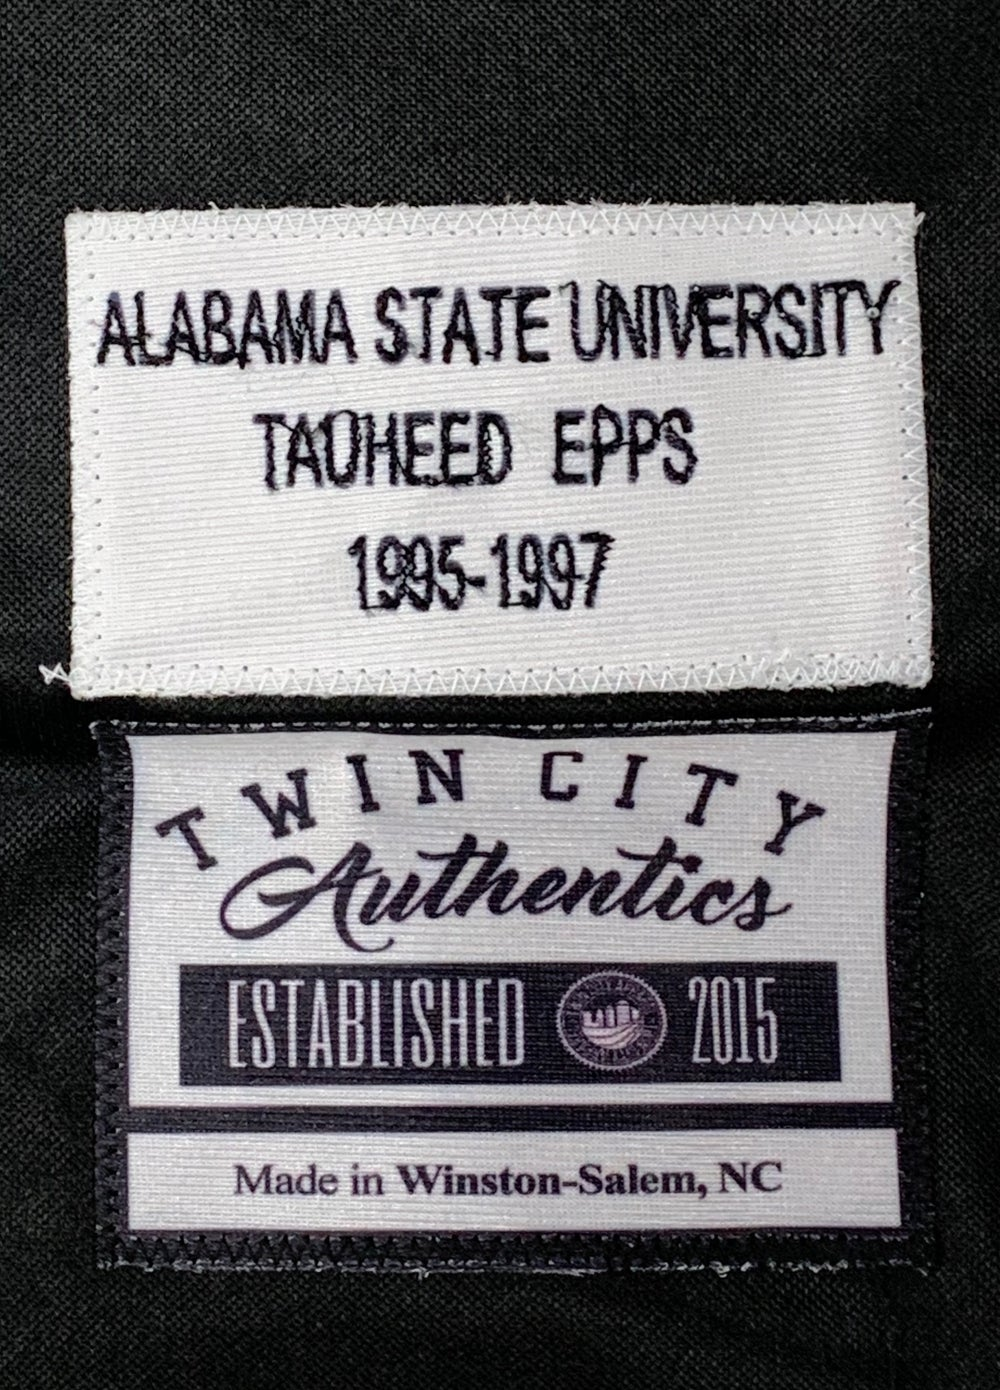 Image of Tauheed Epps (2Chainz) Alabama State custom